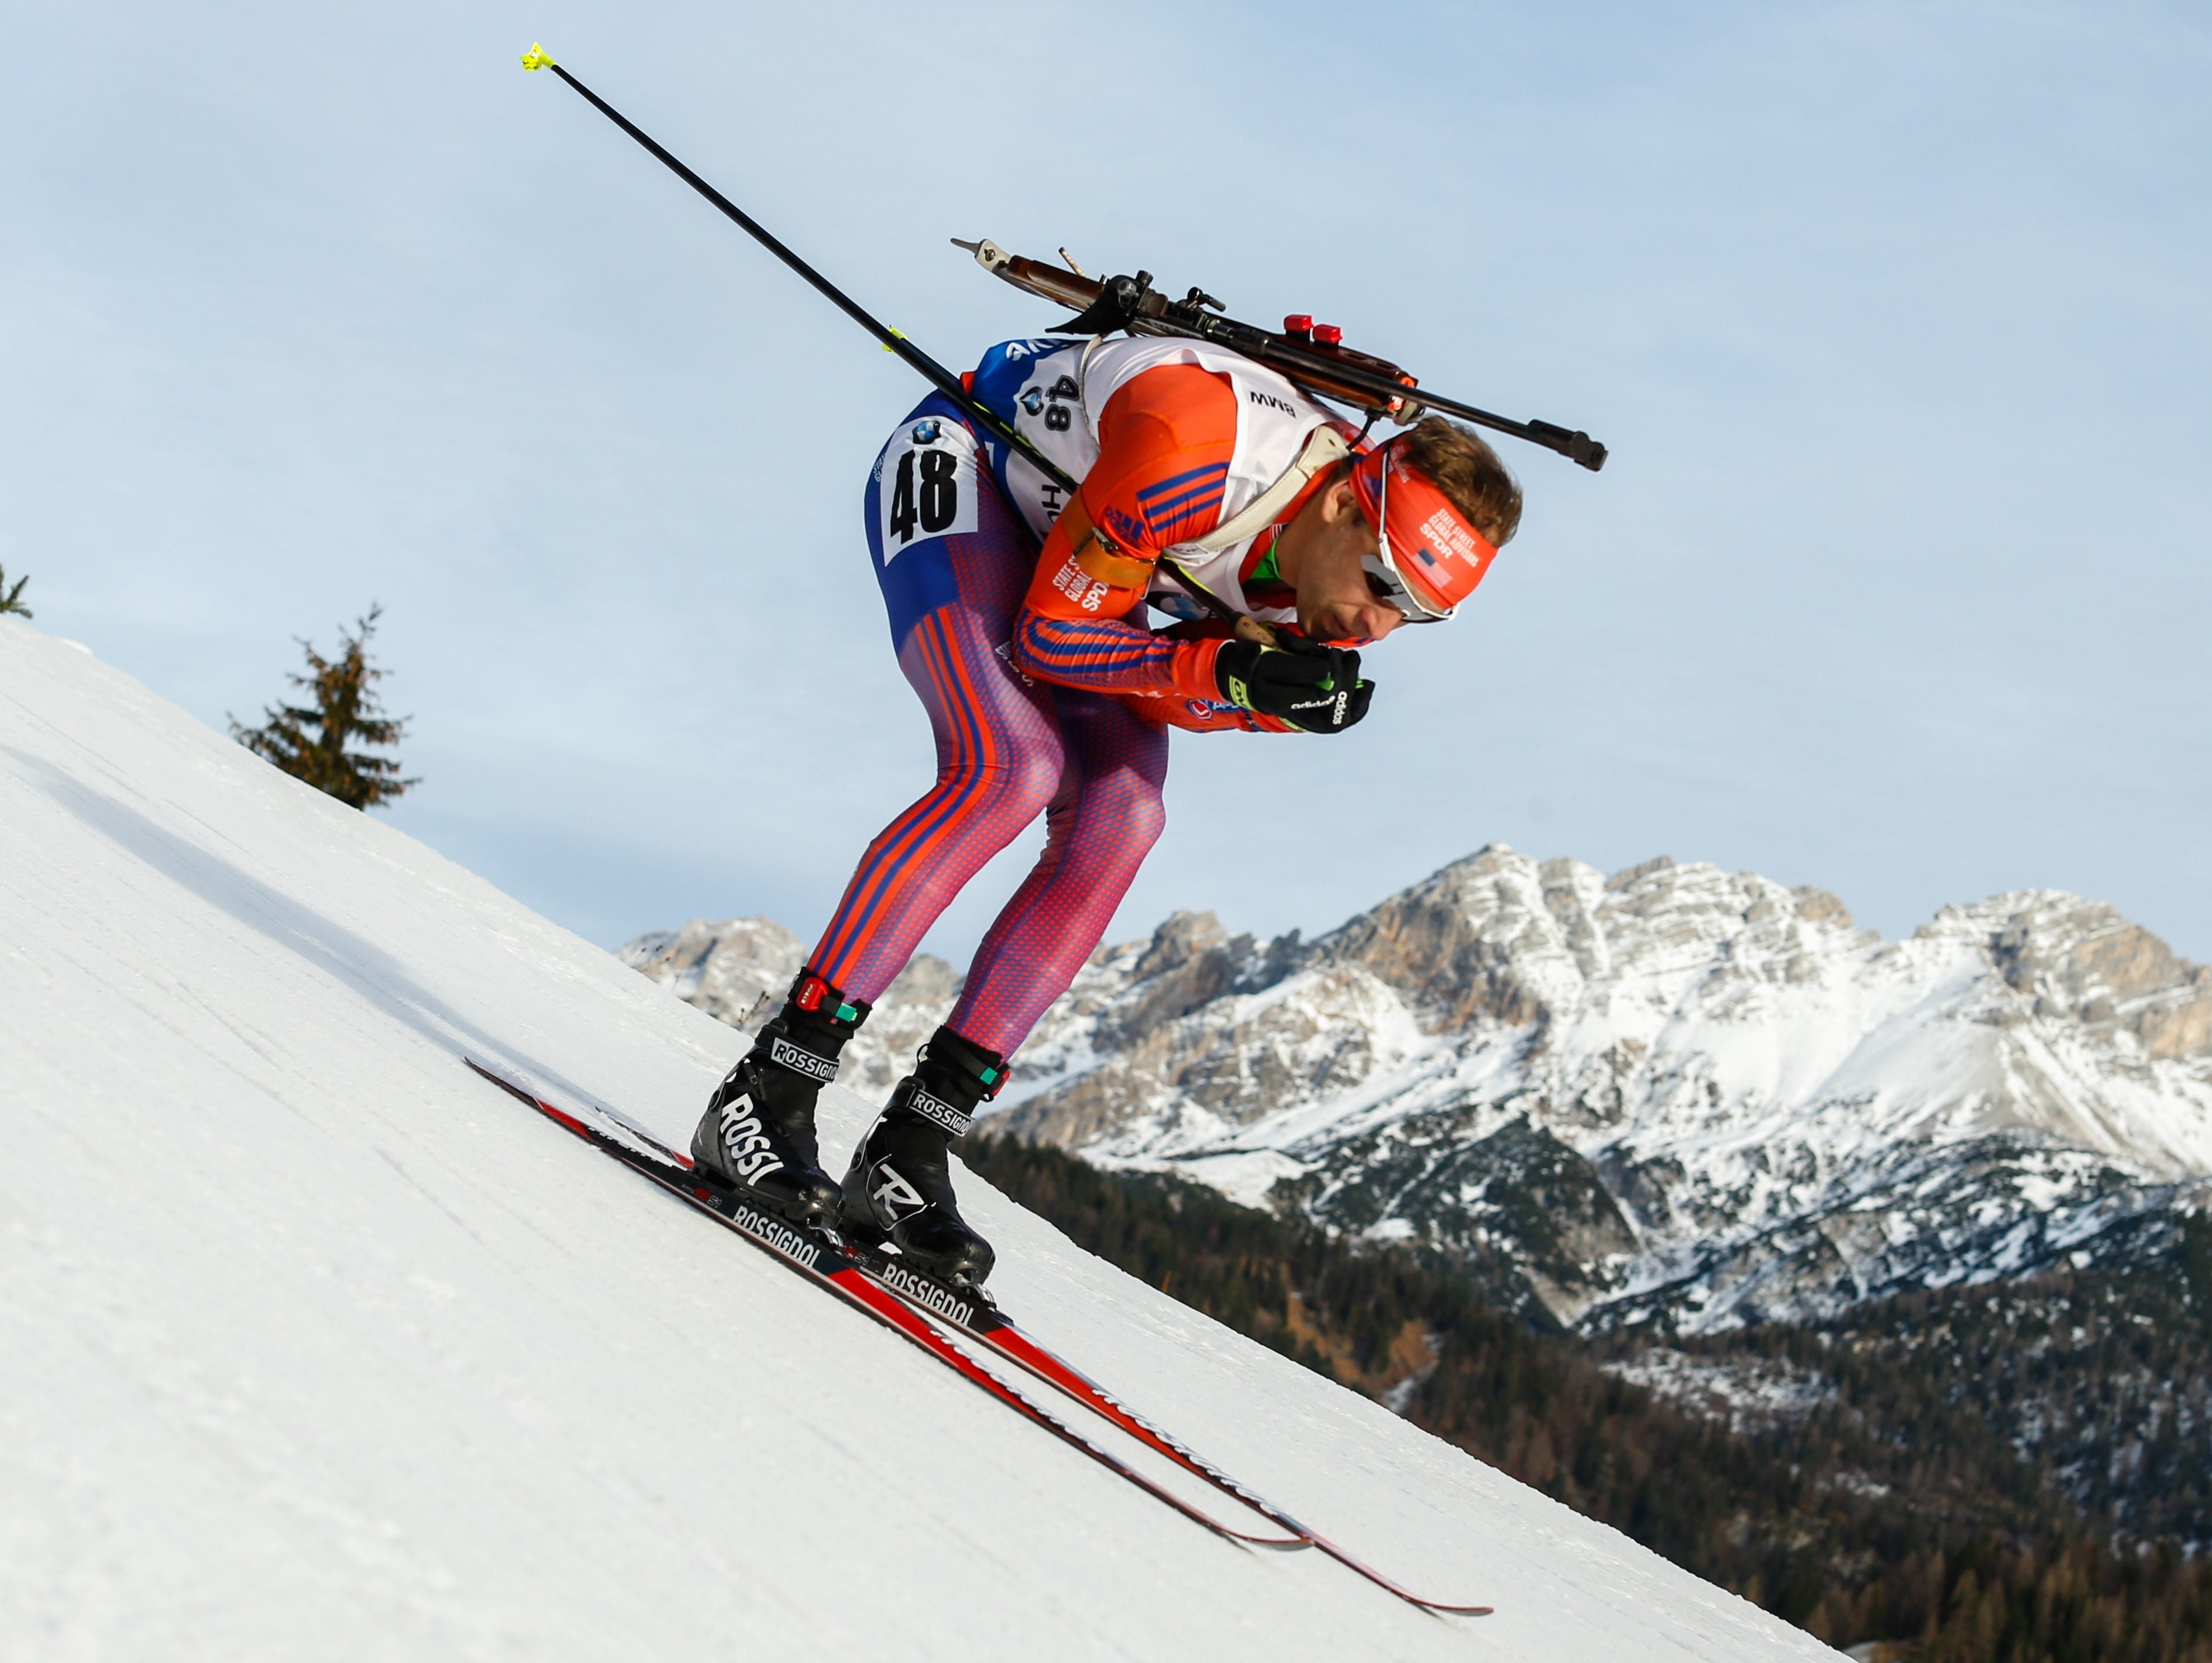 Lowell Bailey of the USA competes during the IBU Biathlon World Cup Men's and Women's Sprint on December 11, 2015 in Hochfilzen, Austria. Jordan Nagel was so influenced by him that she sent him an email to thank him for inspiring her.